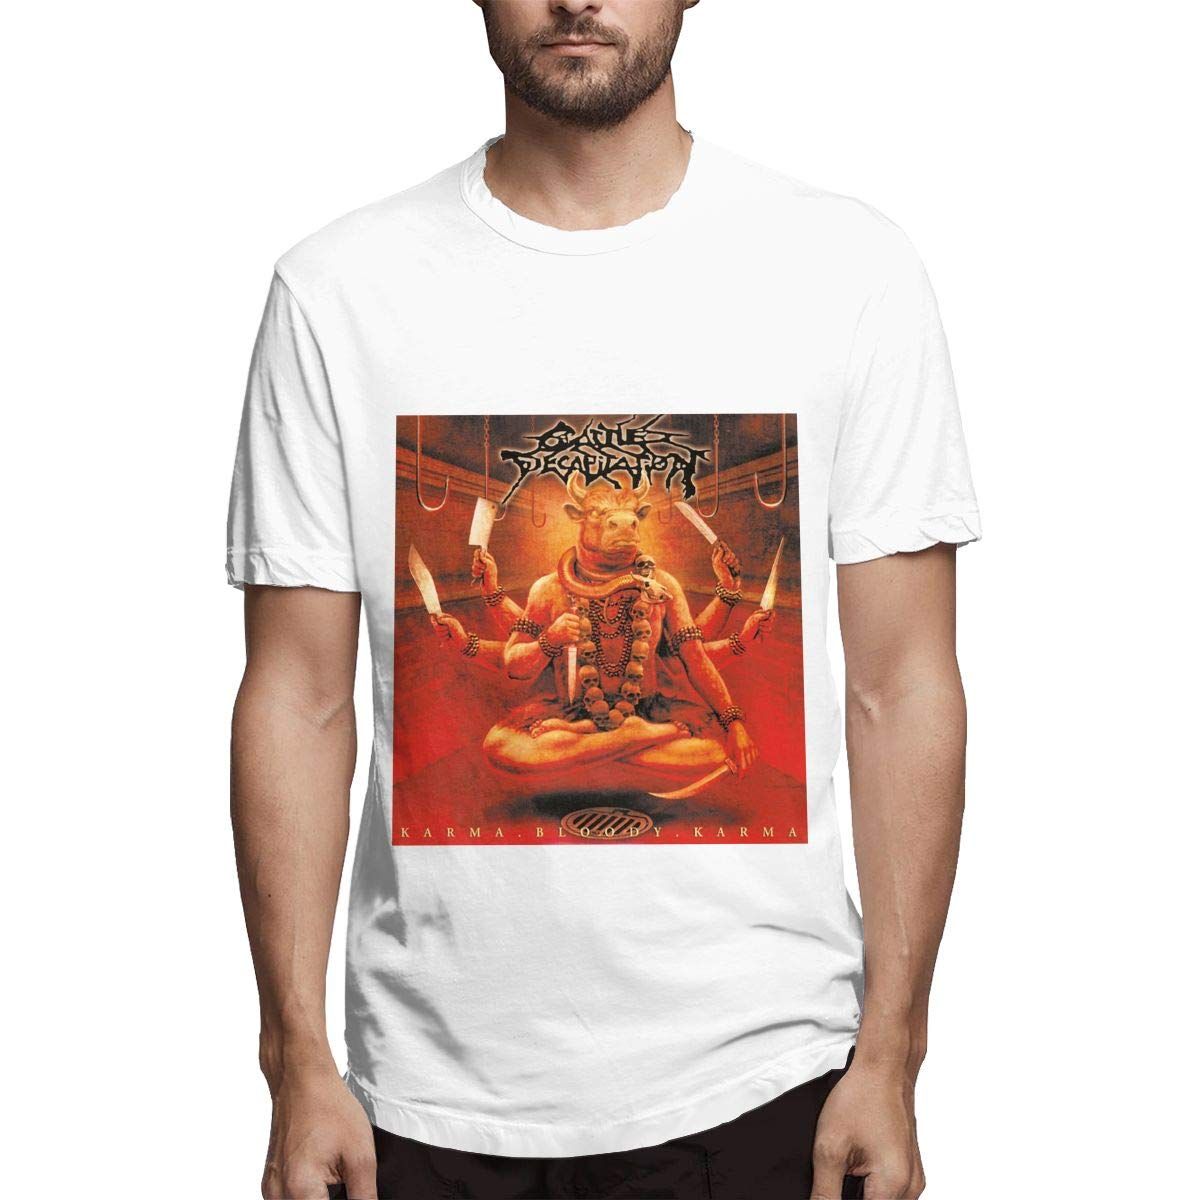 Lihehen Cattle Decapitation Simple Casual Round Neck T Shirt